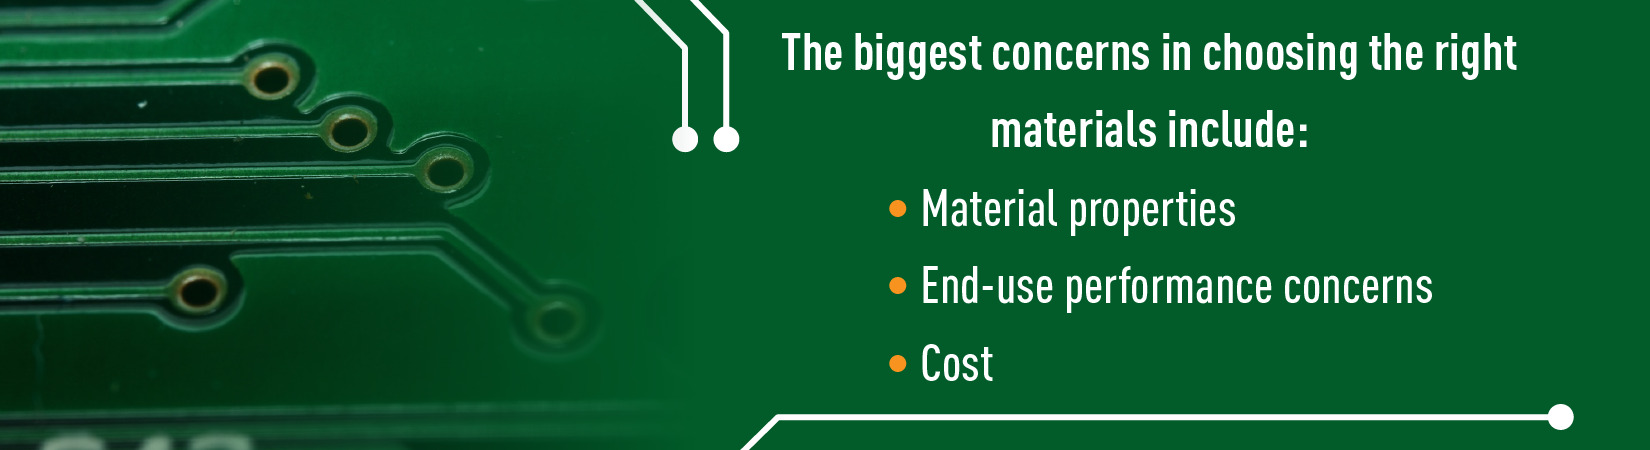 The biggest concerns in choosing the right materials include: Material properties End-use performance concerns and Cost